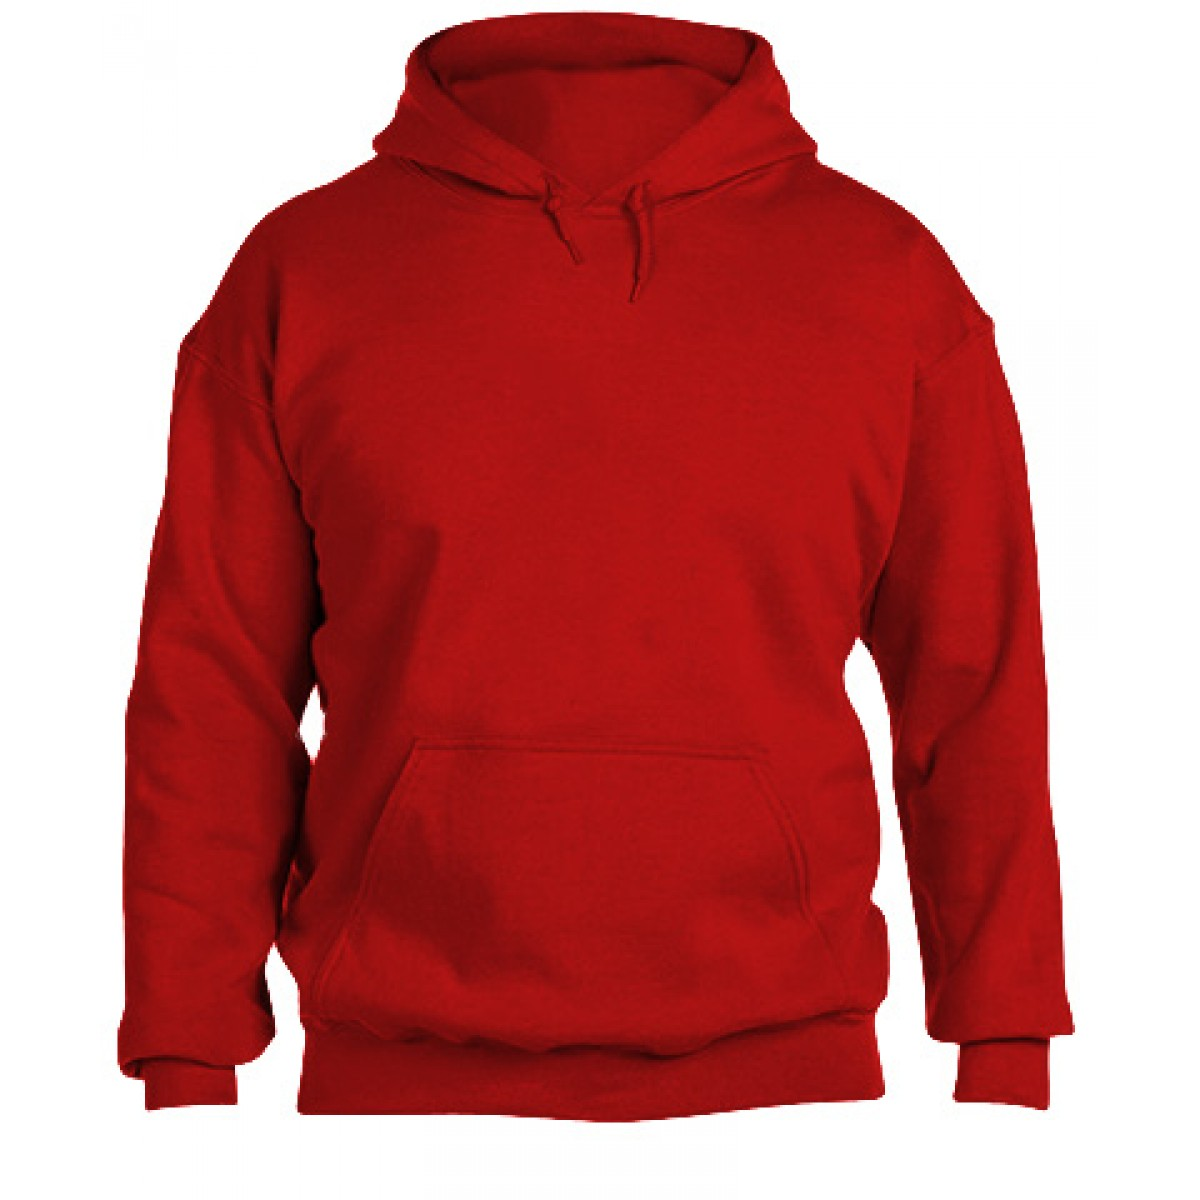 Hooded Sweatshirt 50/50 Heavy Blend -Red-M